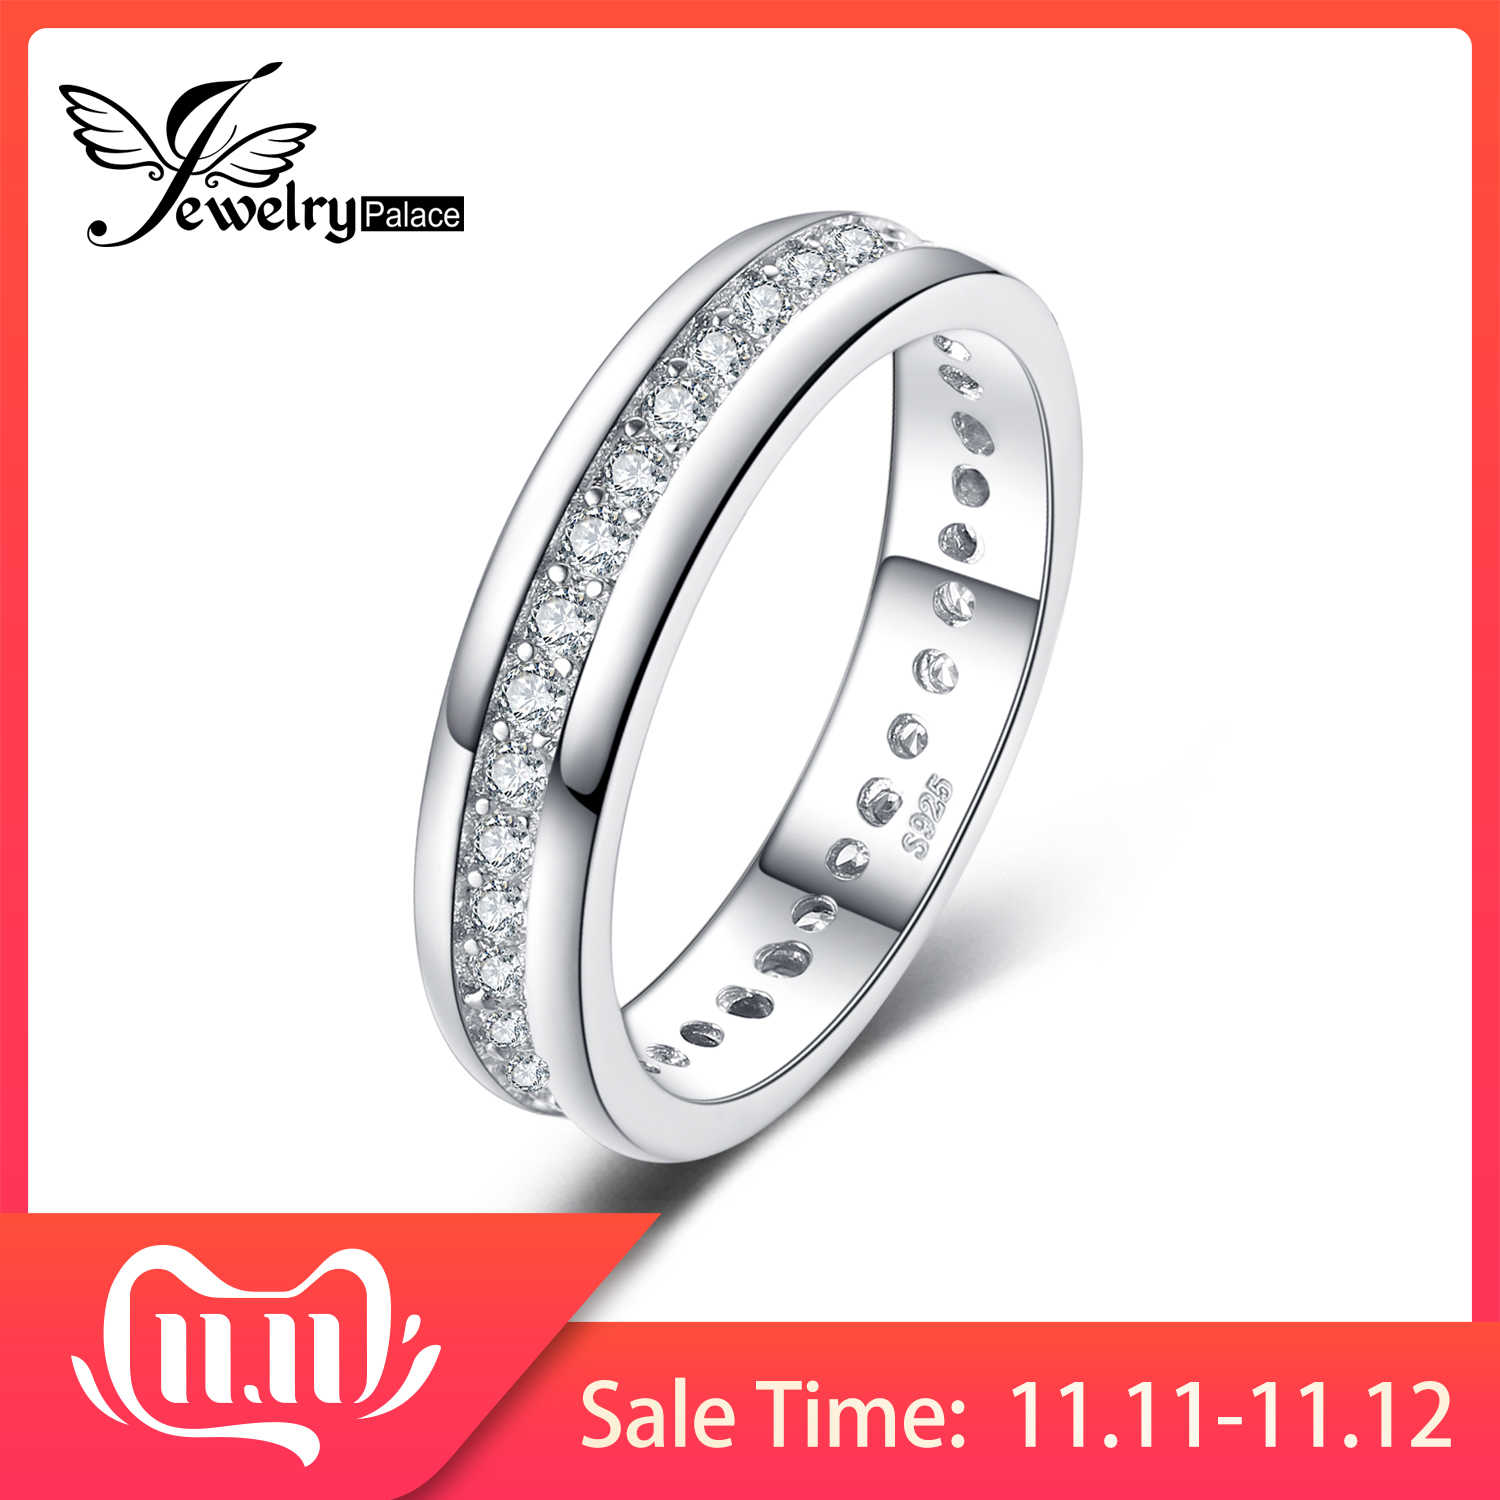 JewelryPalace CZ Wedding Rings 925 Sterling Silver Rings for Women Stackable Anniversary Ring Eternity Band Silver 925 Jewelry